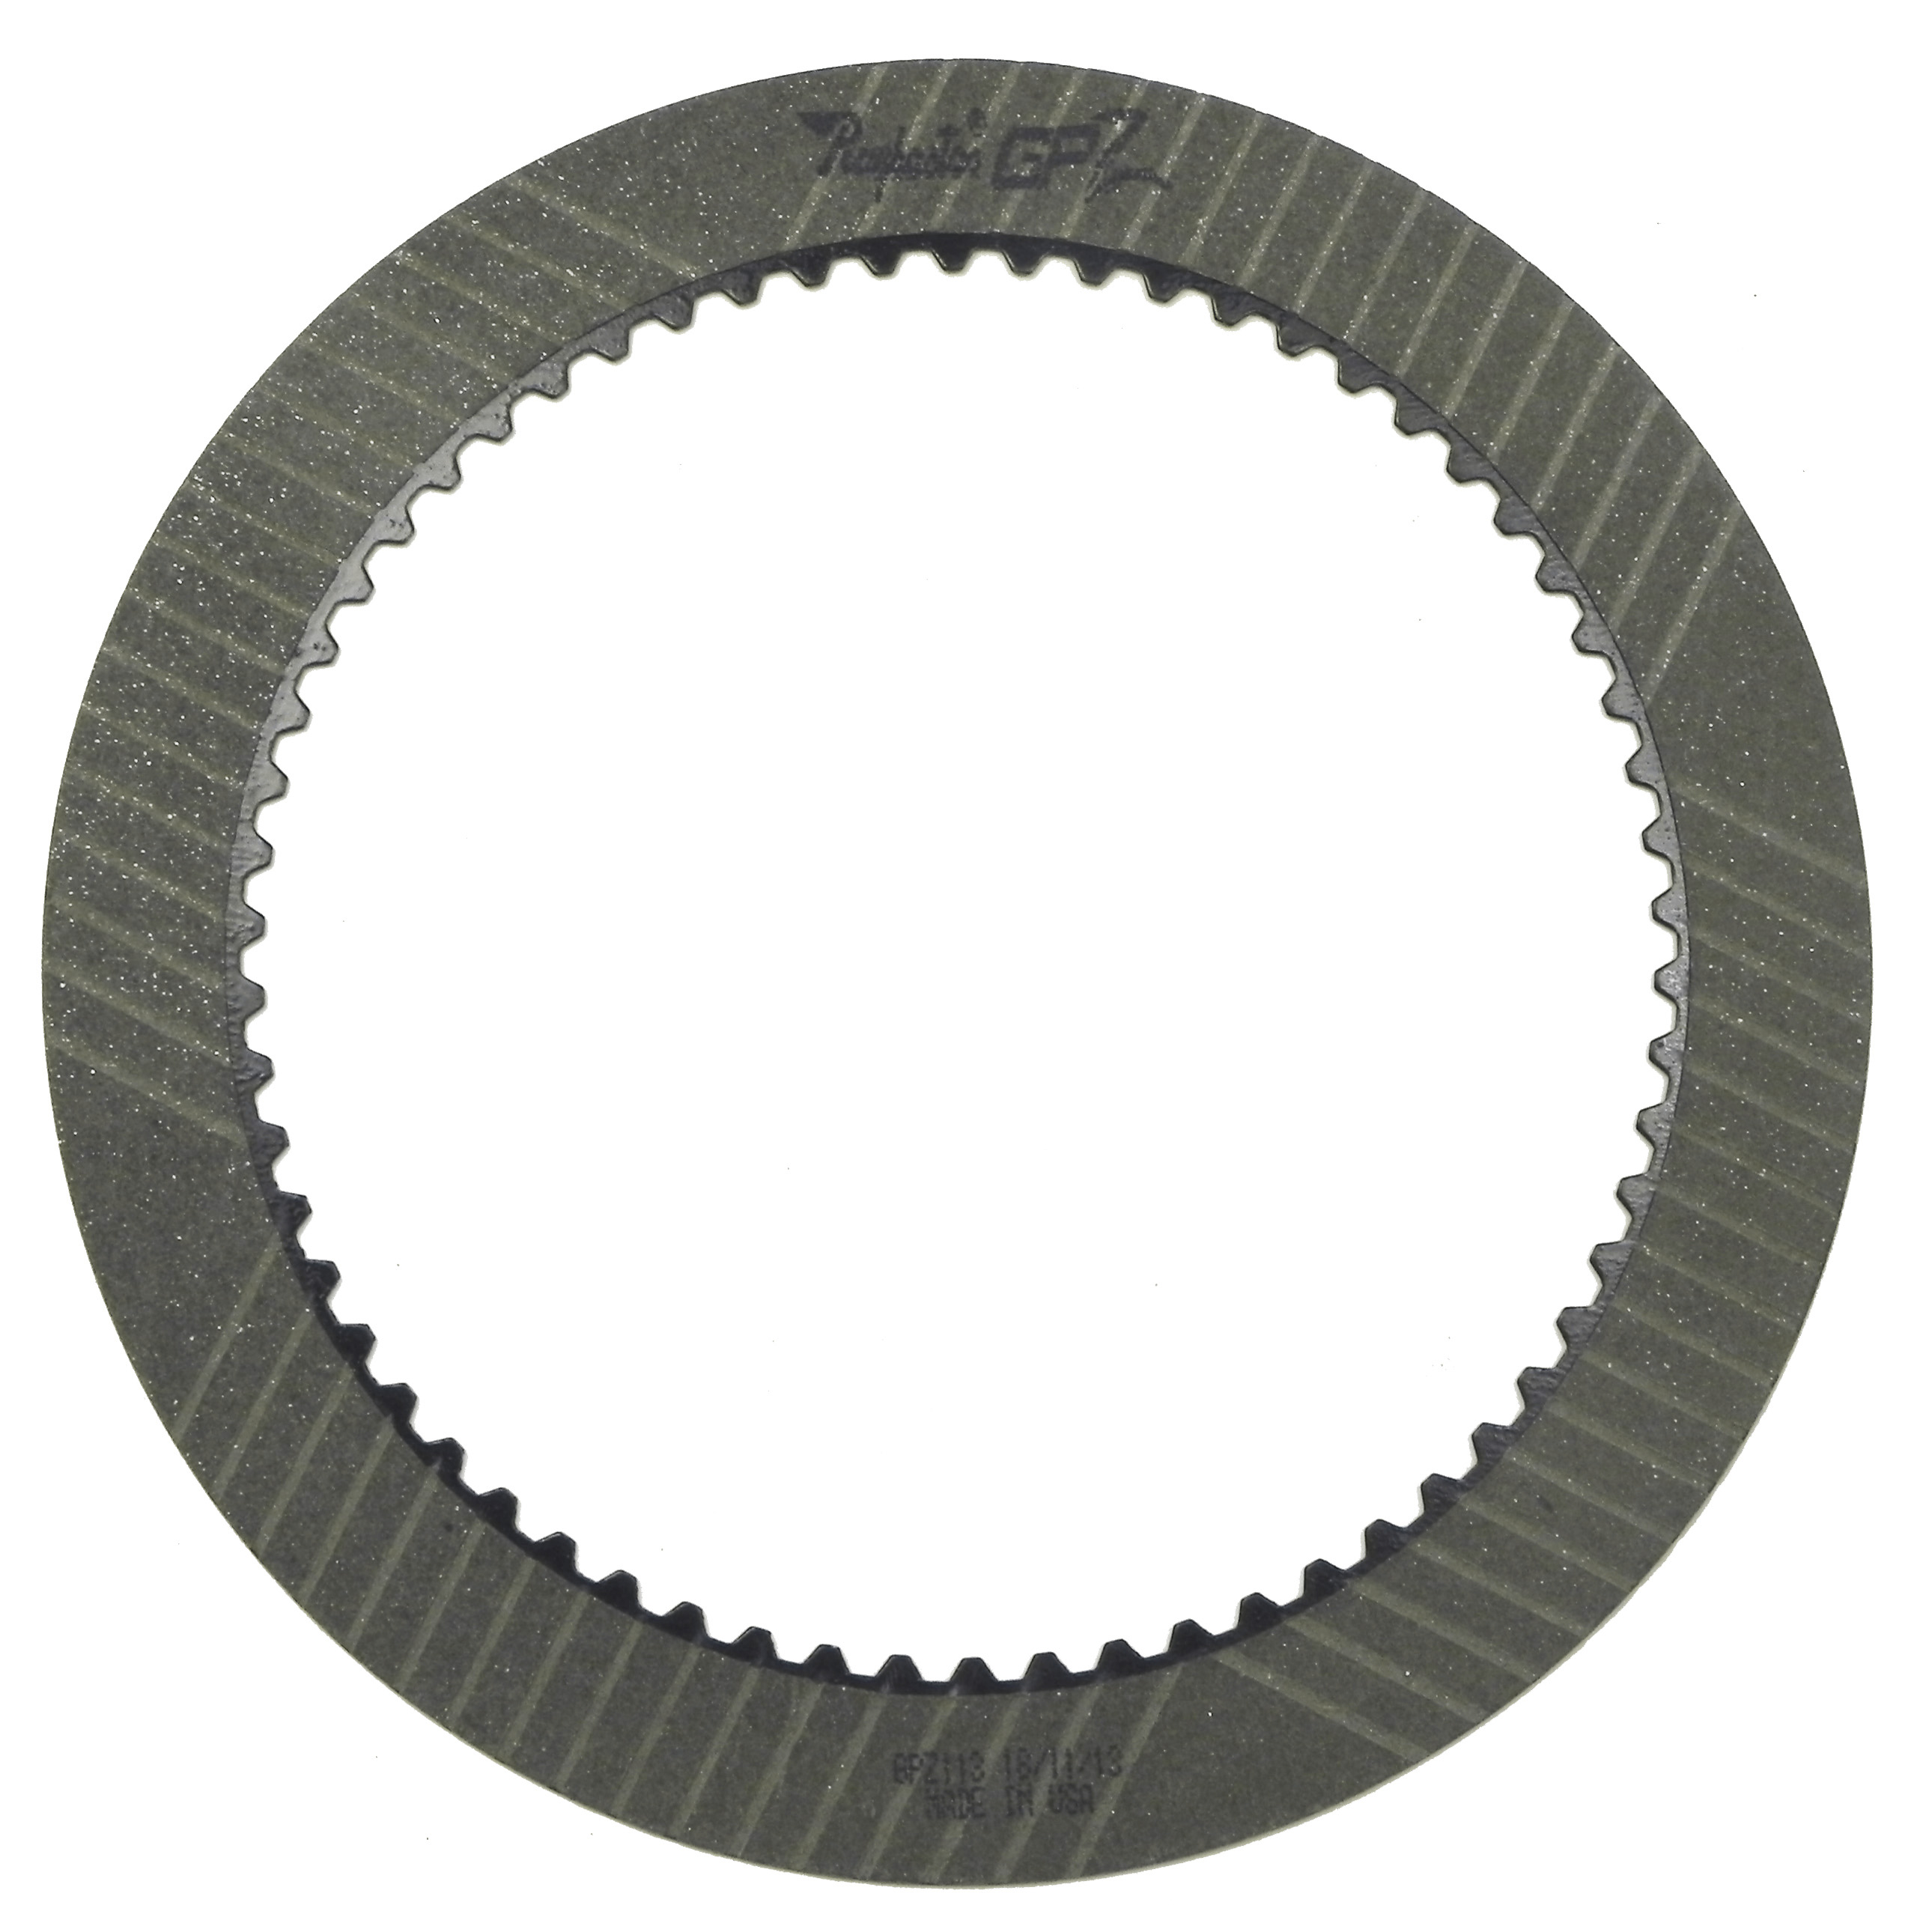 46RH, 46RE, 47RH, 47RE, 48RE GPZ Forward, Direct .062 Friction Clutch Plate